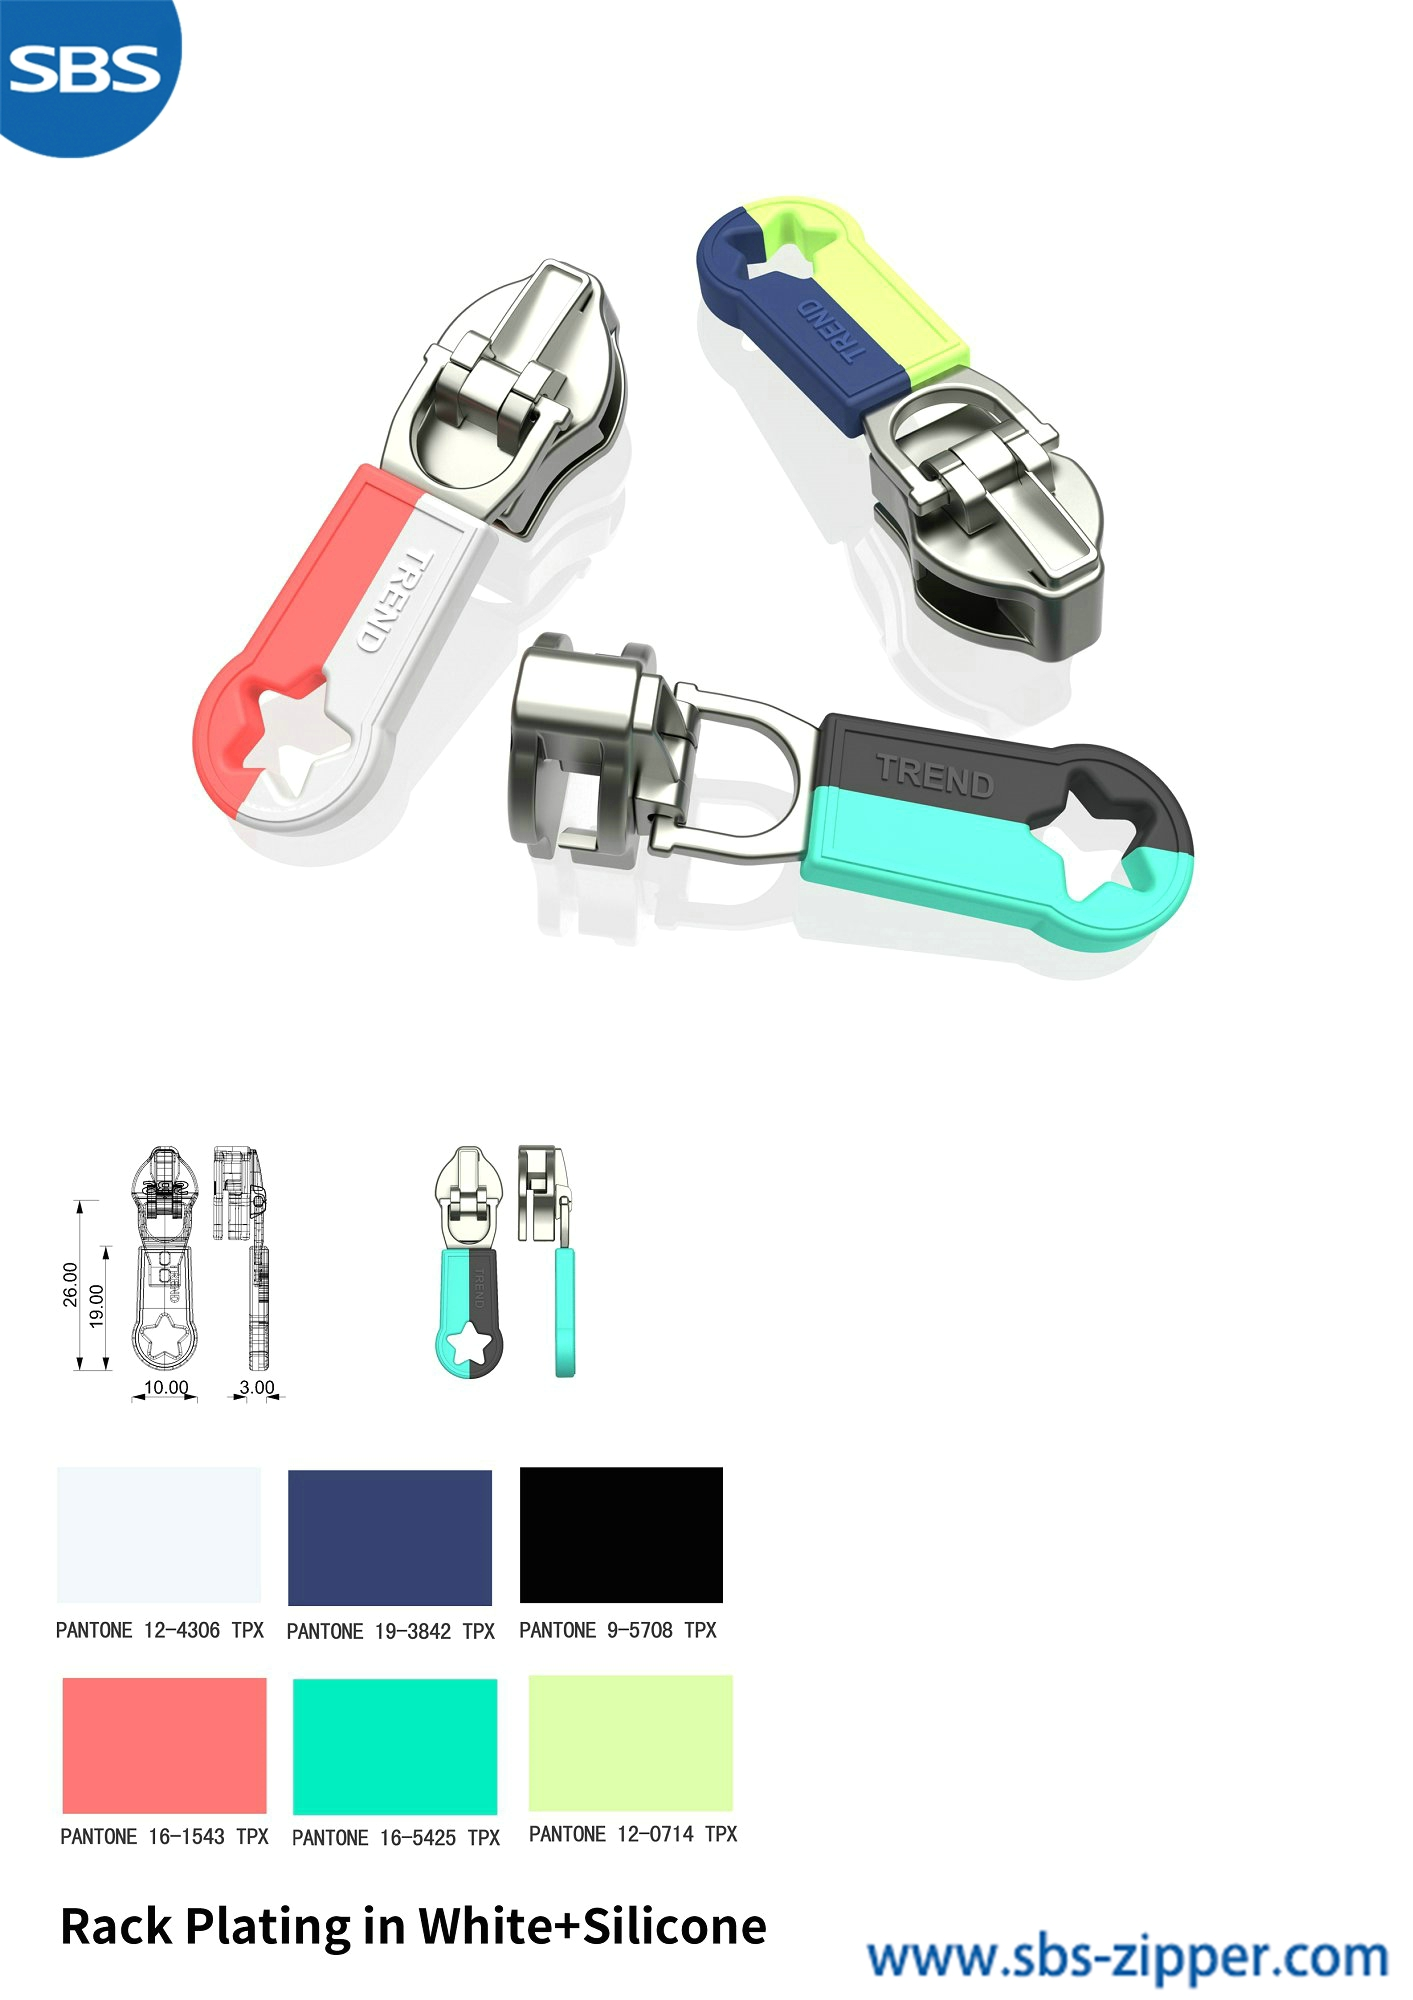 Custom Metal Zipper Pulls Supplier 18ACC004丨sbs-zipper.com